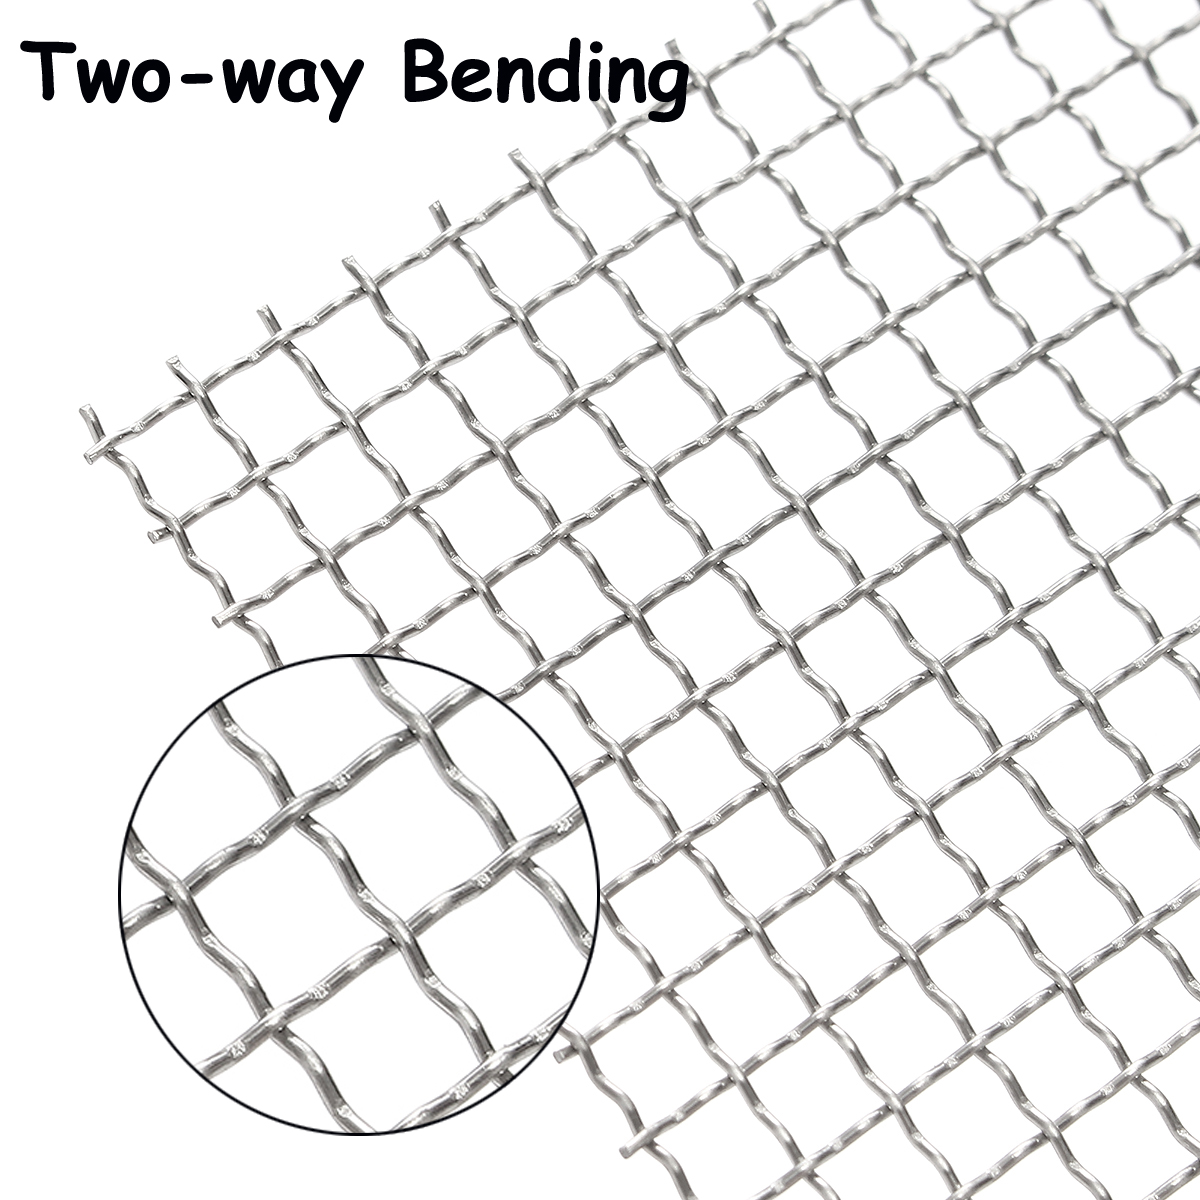 Stainless Steel 304 Mesh #4 .047 Wire Cloth Screen Filter 16\'\'x16 ...